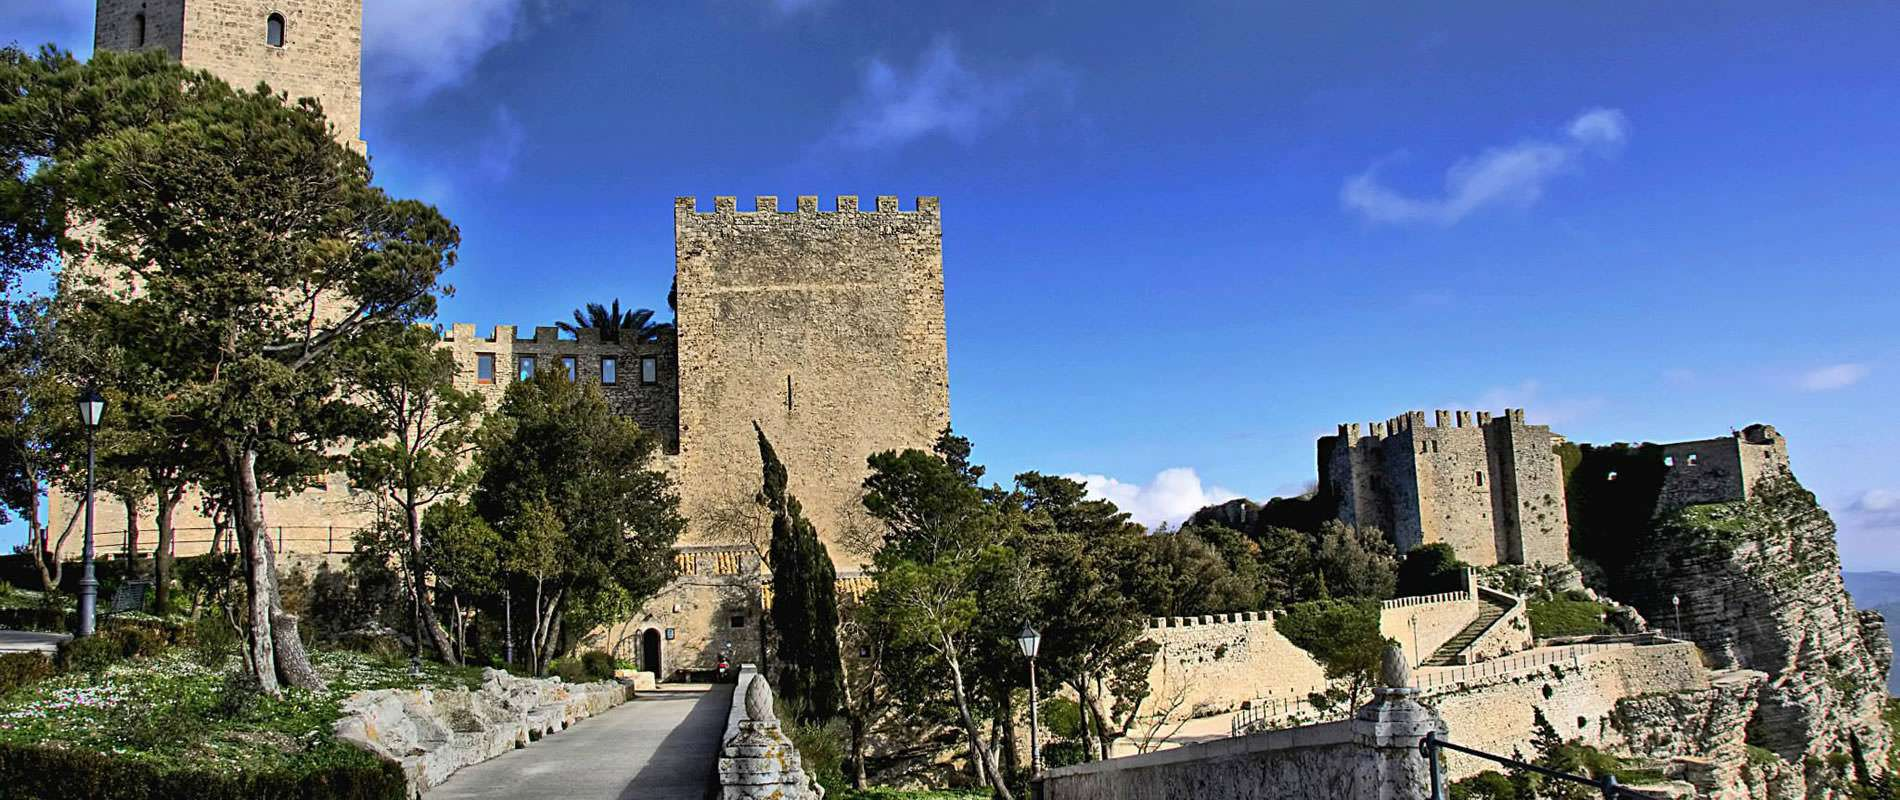 The splendid town of Erice, perched on top of Monte San Giuliano,has very ancient origins.